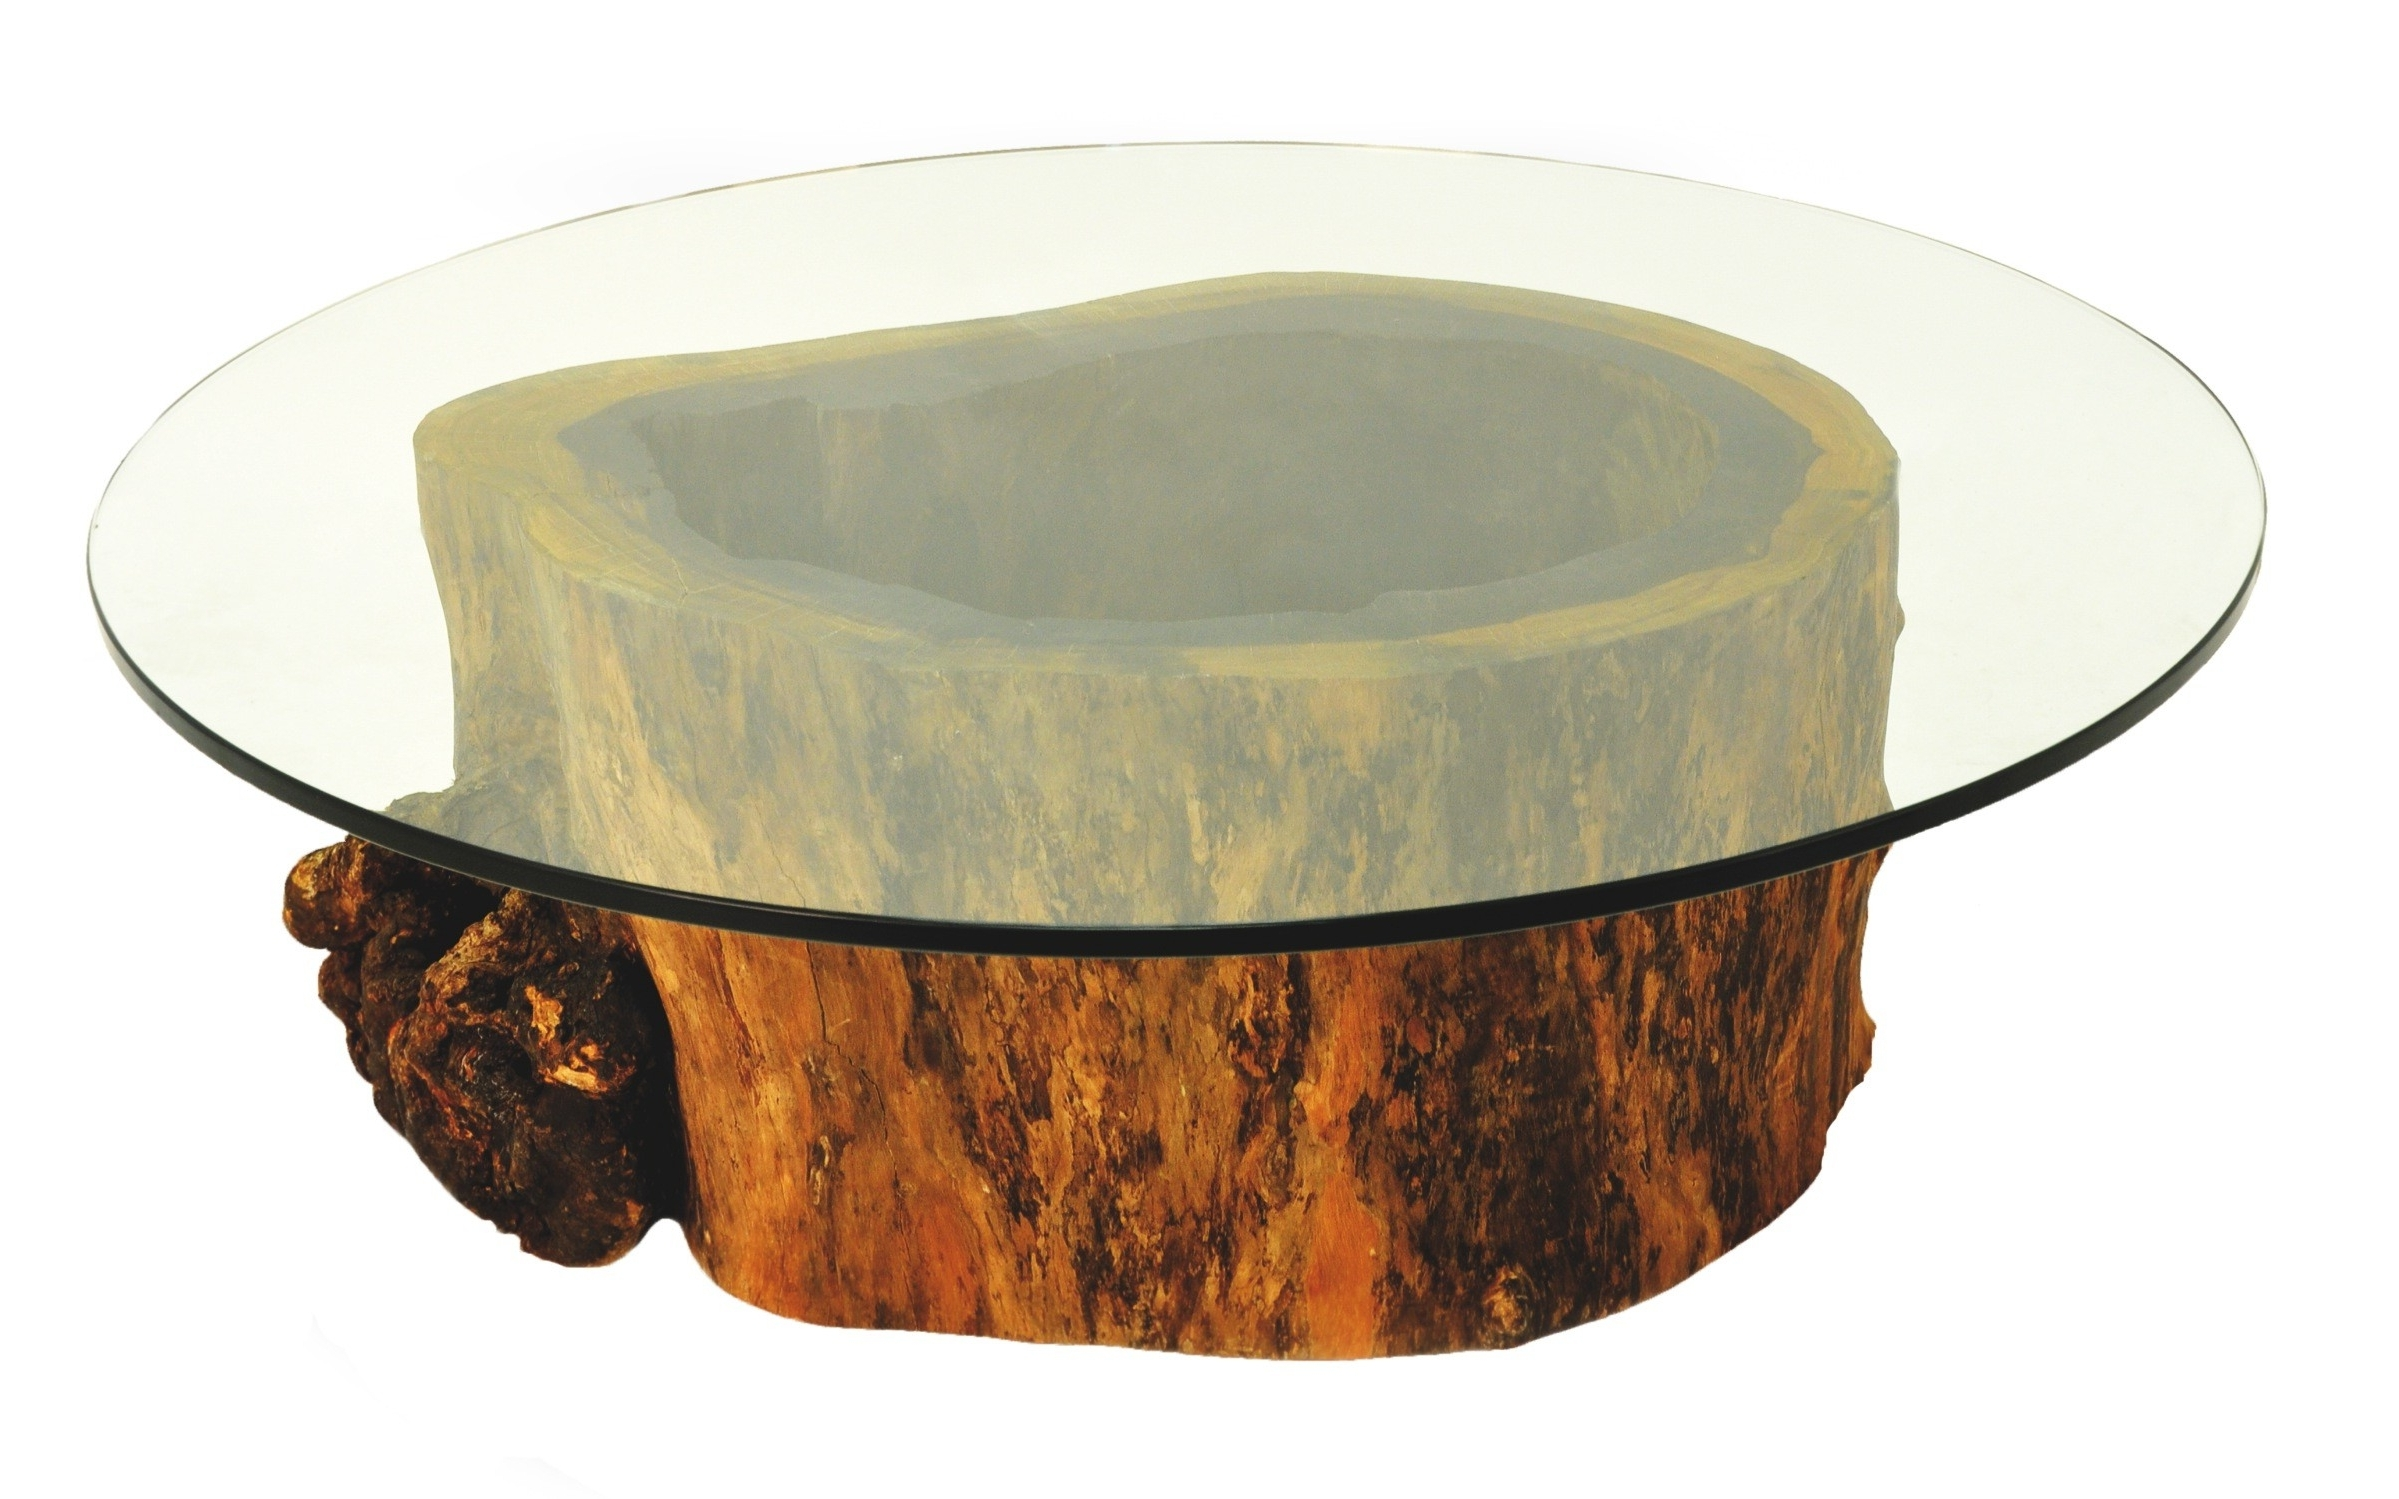 Glass Dining Tables With Oak Legs With Regard To 2018 Round Glass Table With Round Brown Trunk Base Of Gorgeous Round (View 24 of 25)